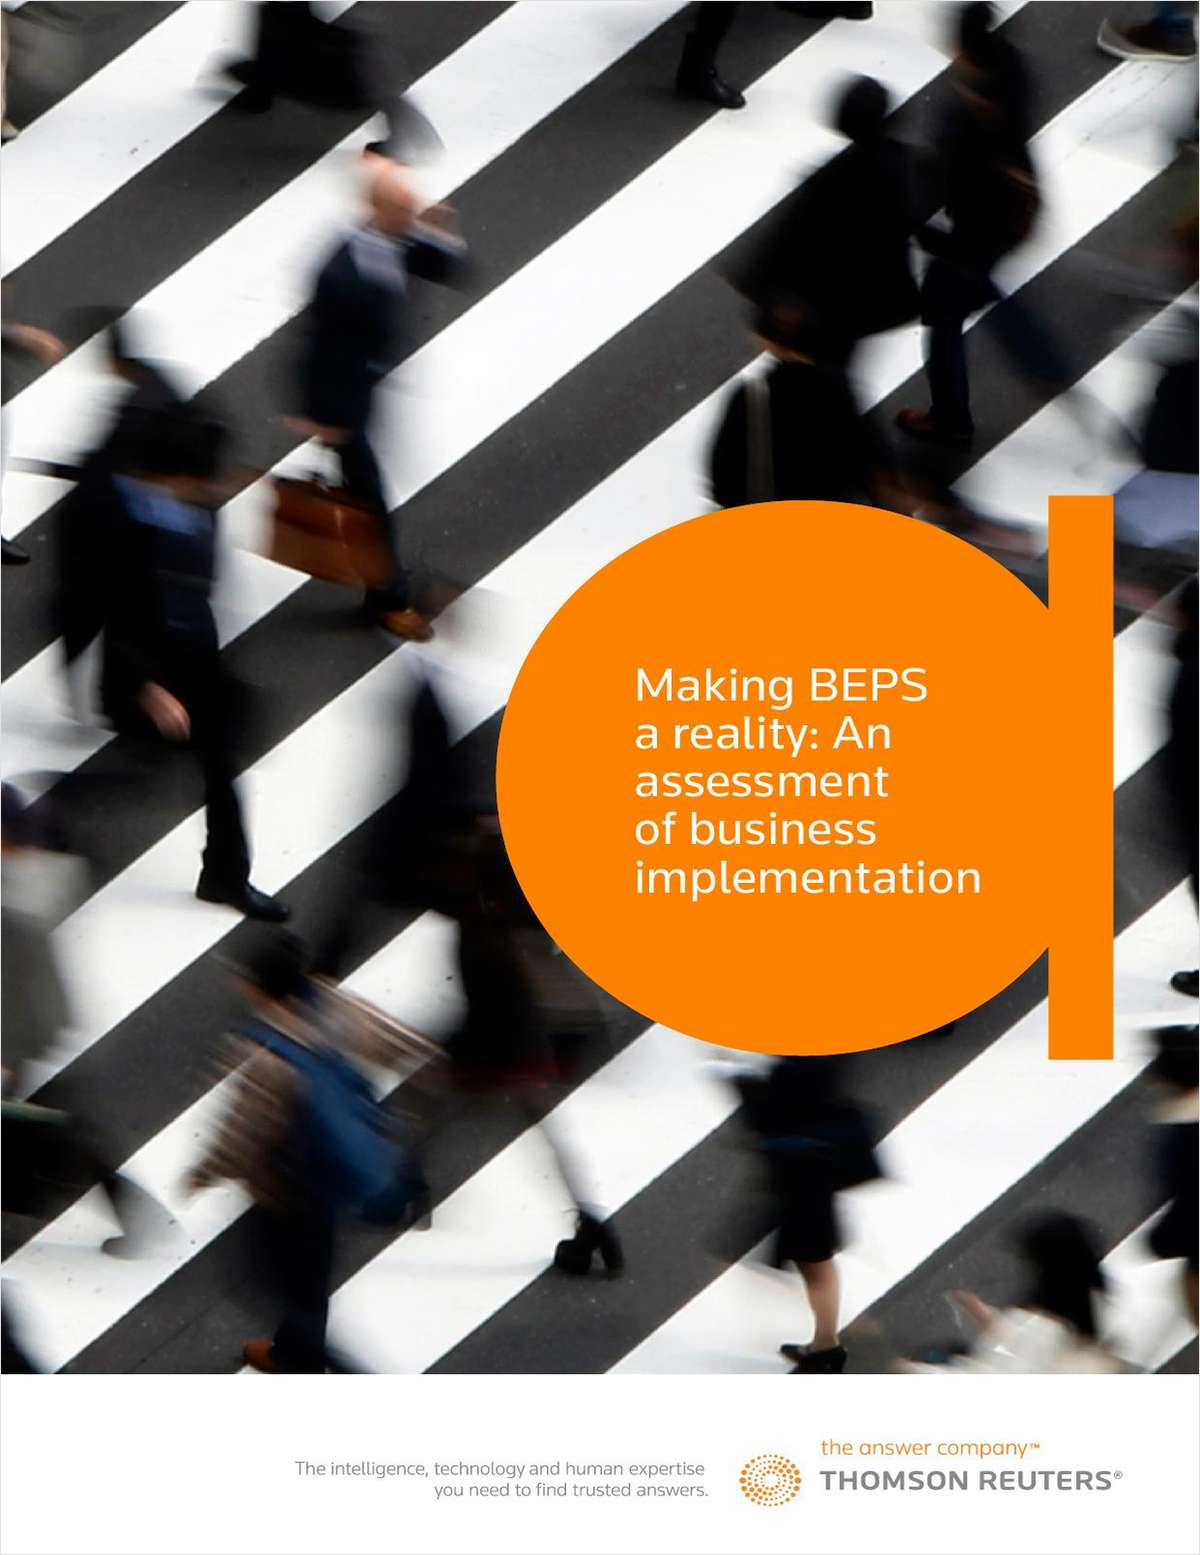 Making BEPS a reality: An assessment of business implementation